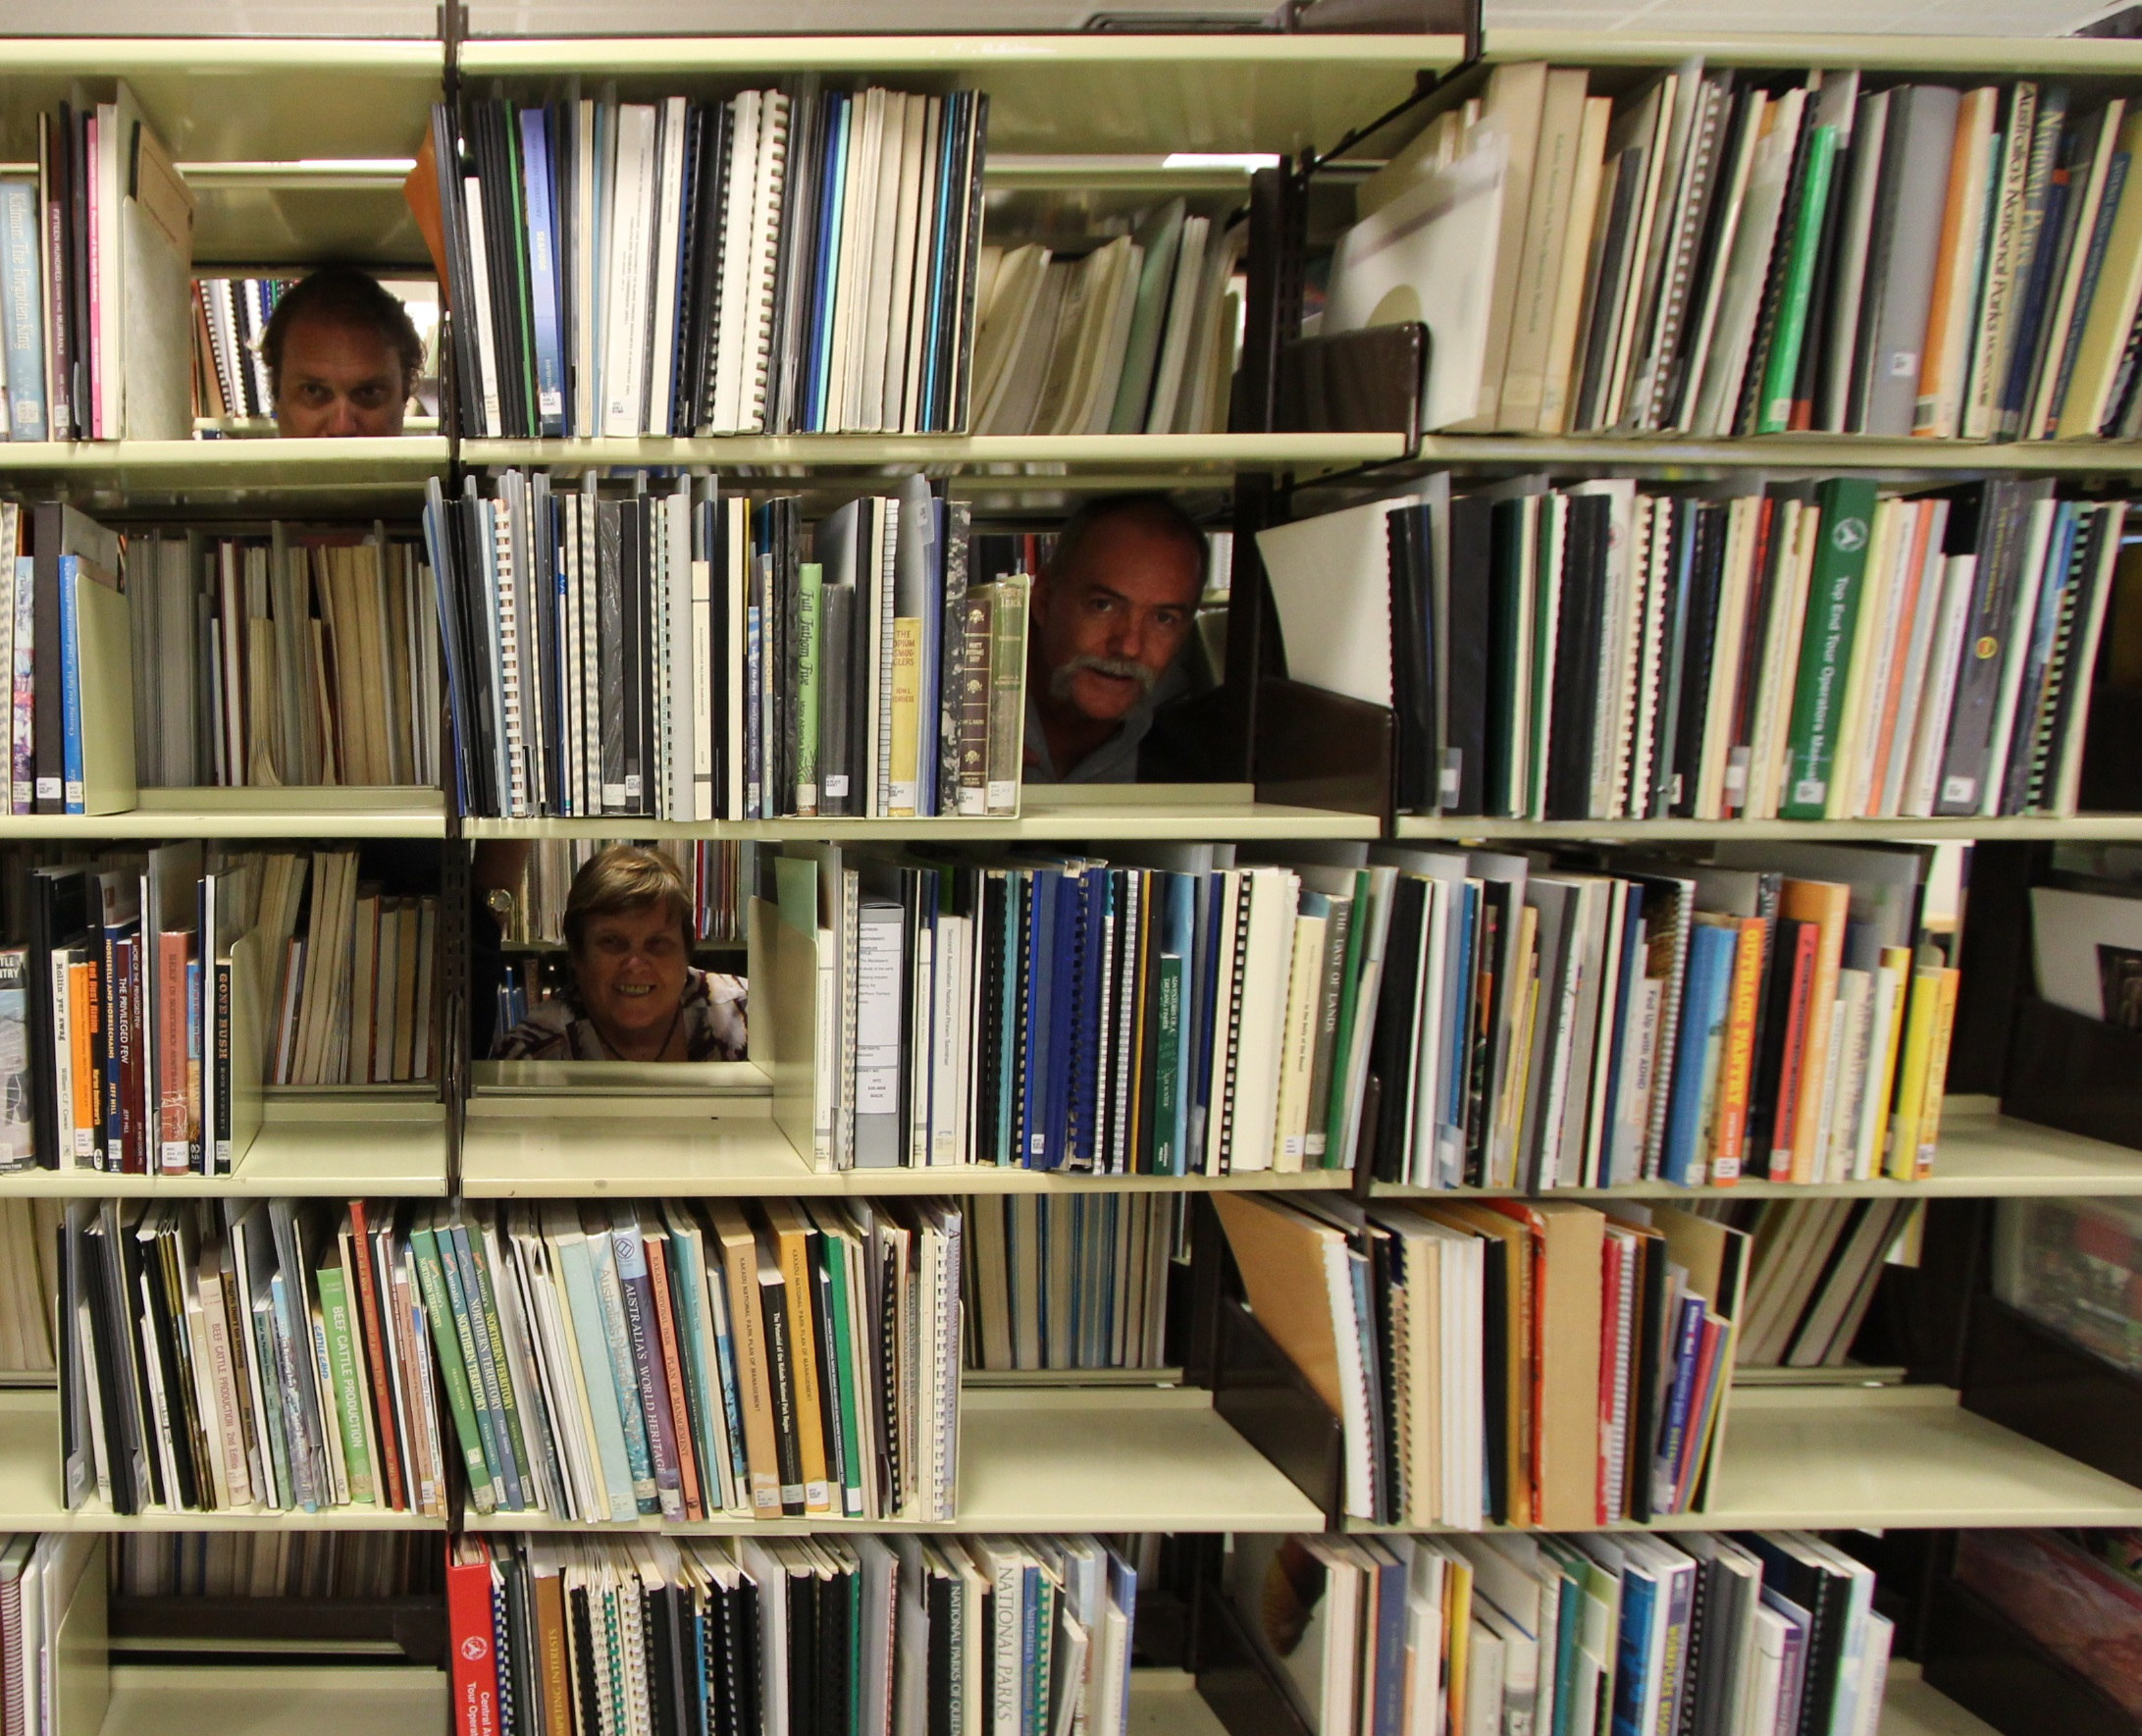 Librarians in the shelves